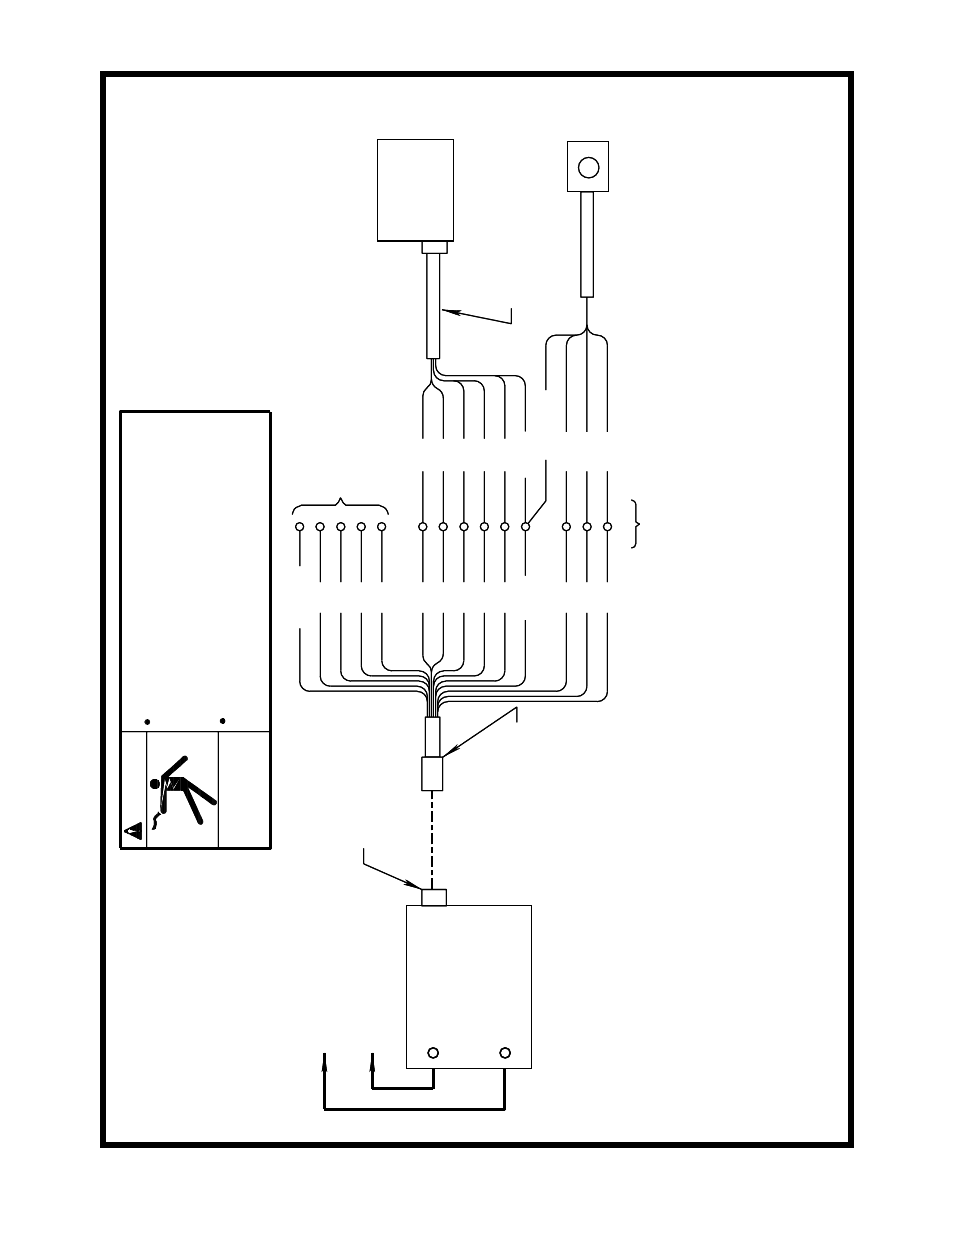 medium resolution of lincoln ln7 wire feeder diagram wiring diagram home lincoln electric wire diagram wiring diagram schema lincoln